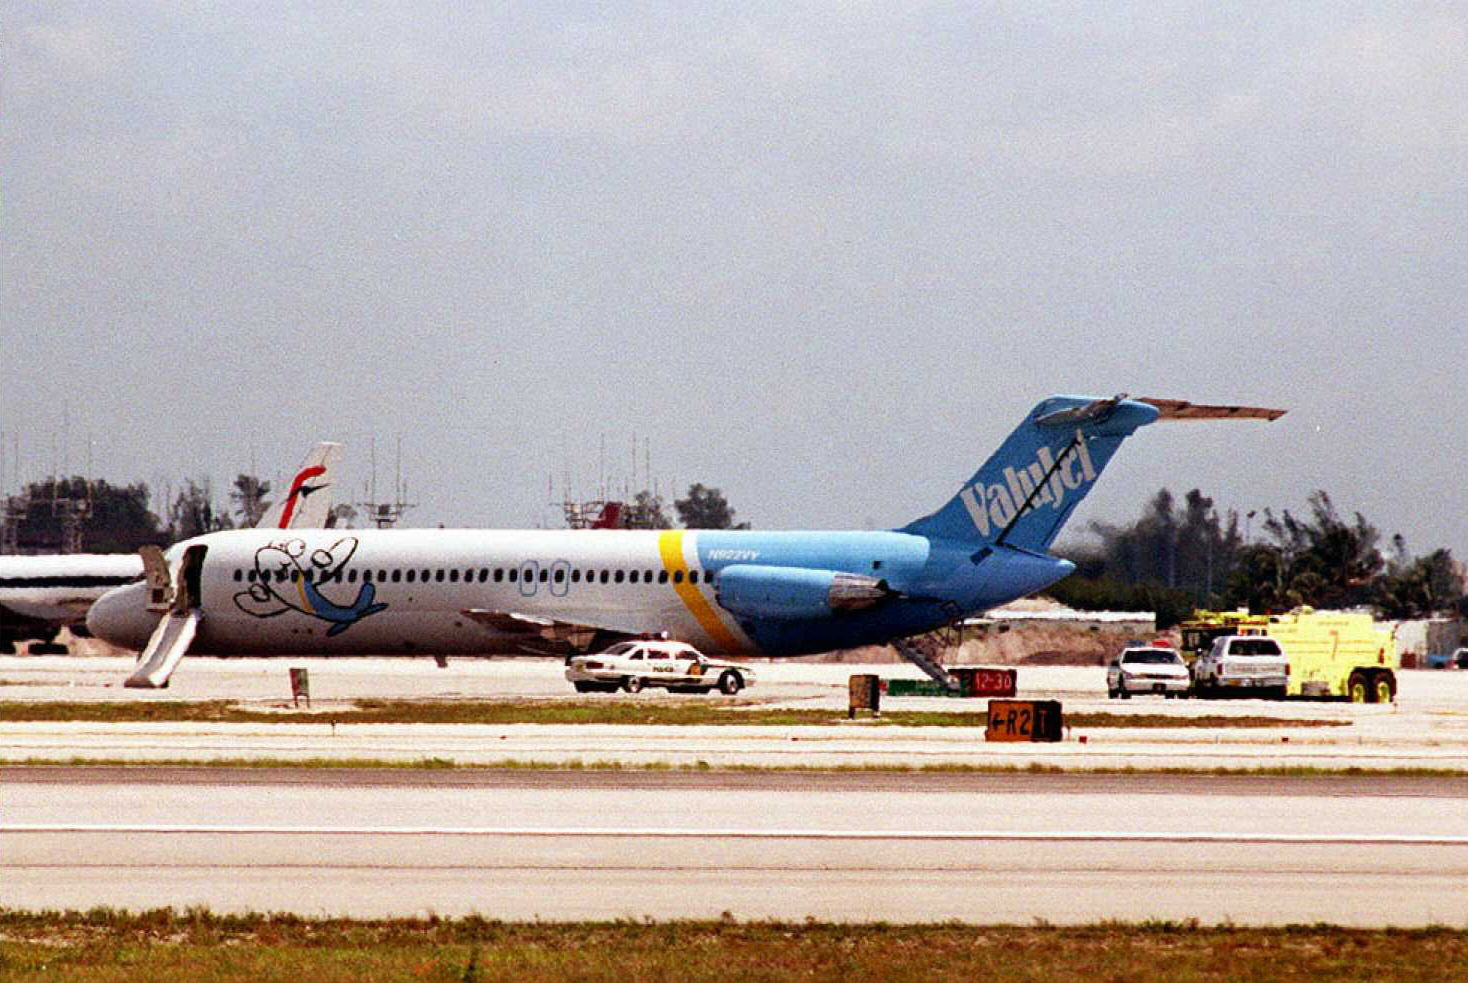 A ValuJet plane sits on the tarmac at Miami Intern